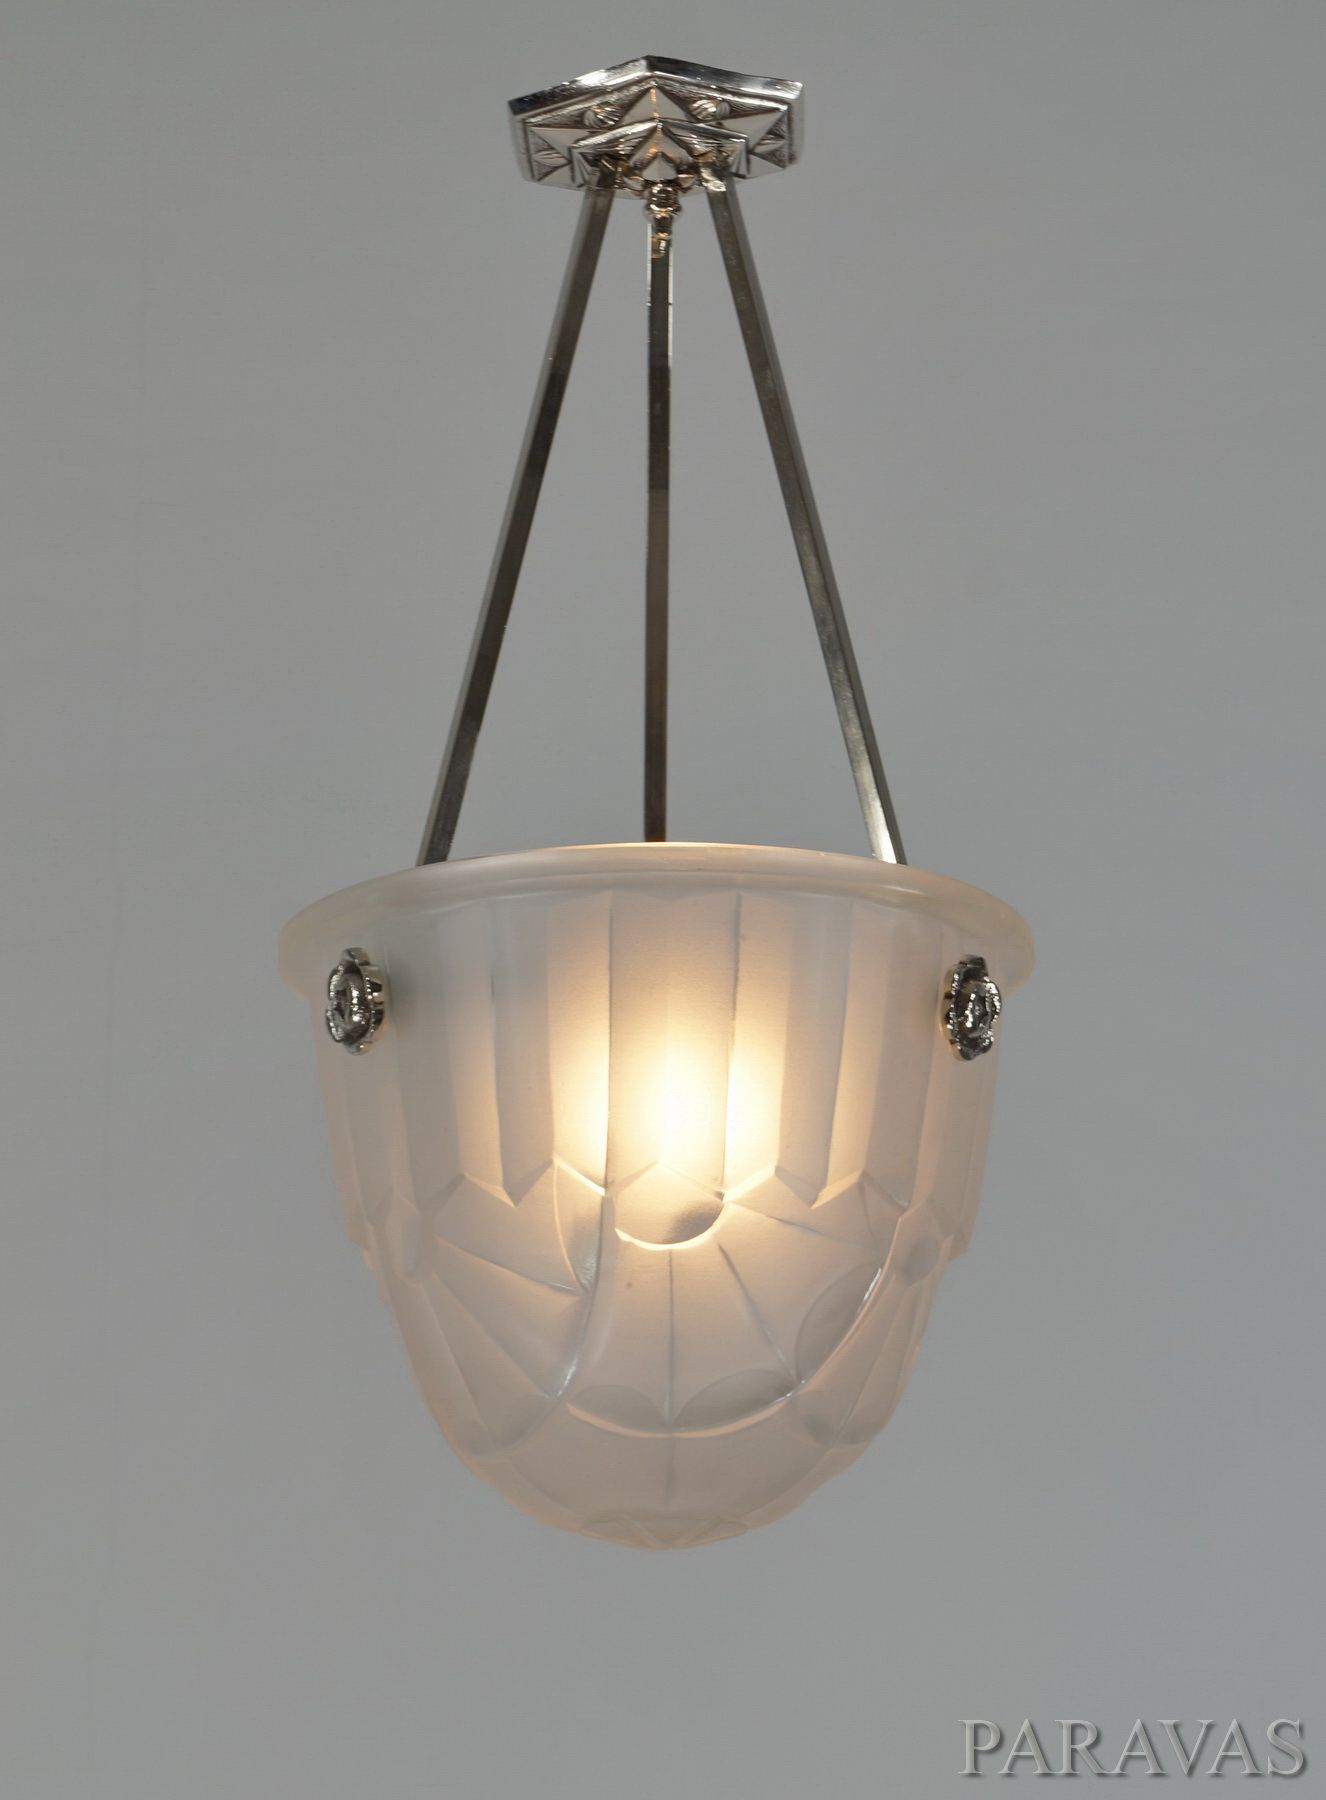 Ceiling Lights Francis Hubens Degue French 1930 Art Deco Chandelier Paravas Ebay